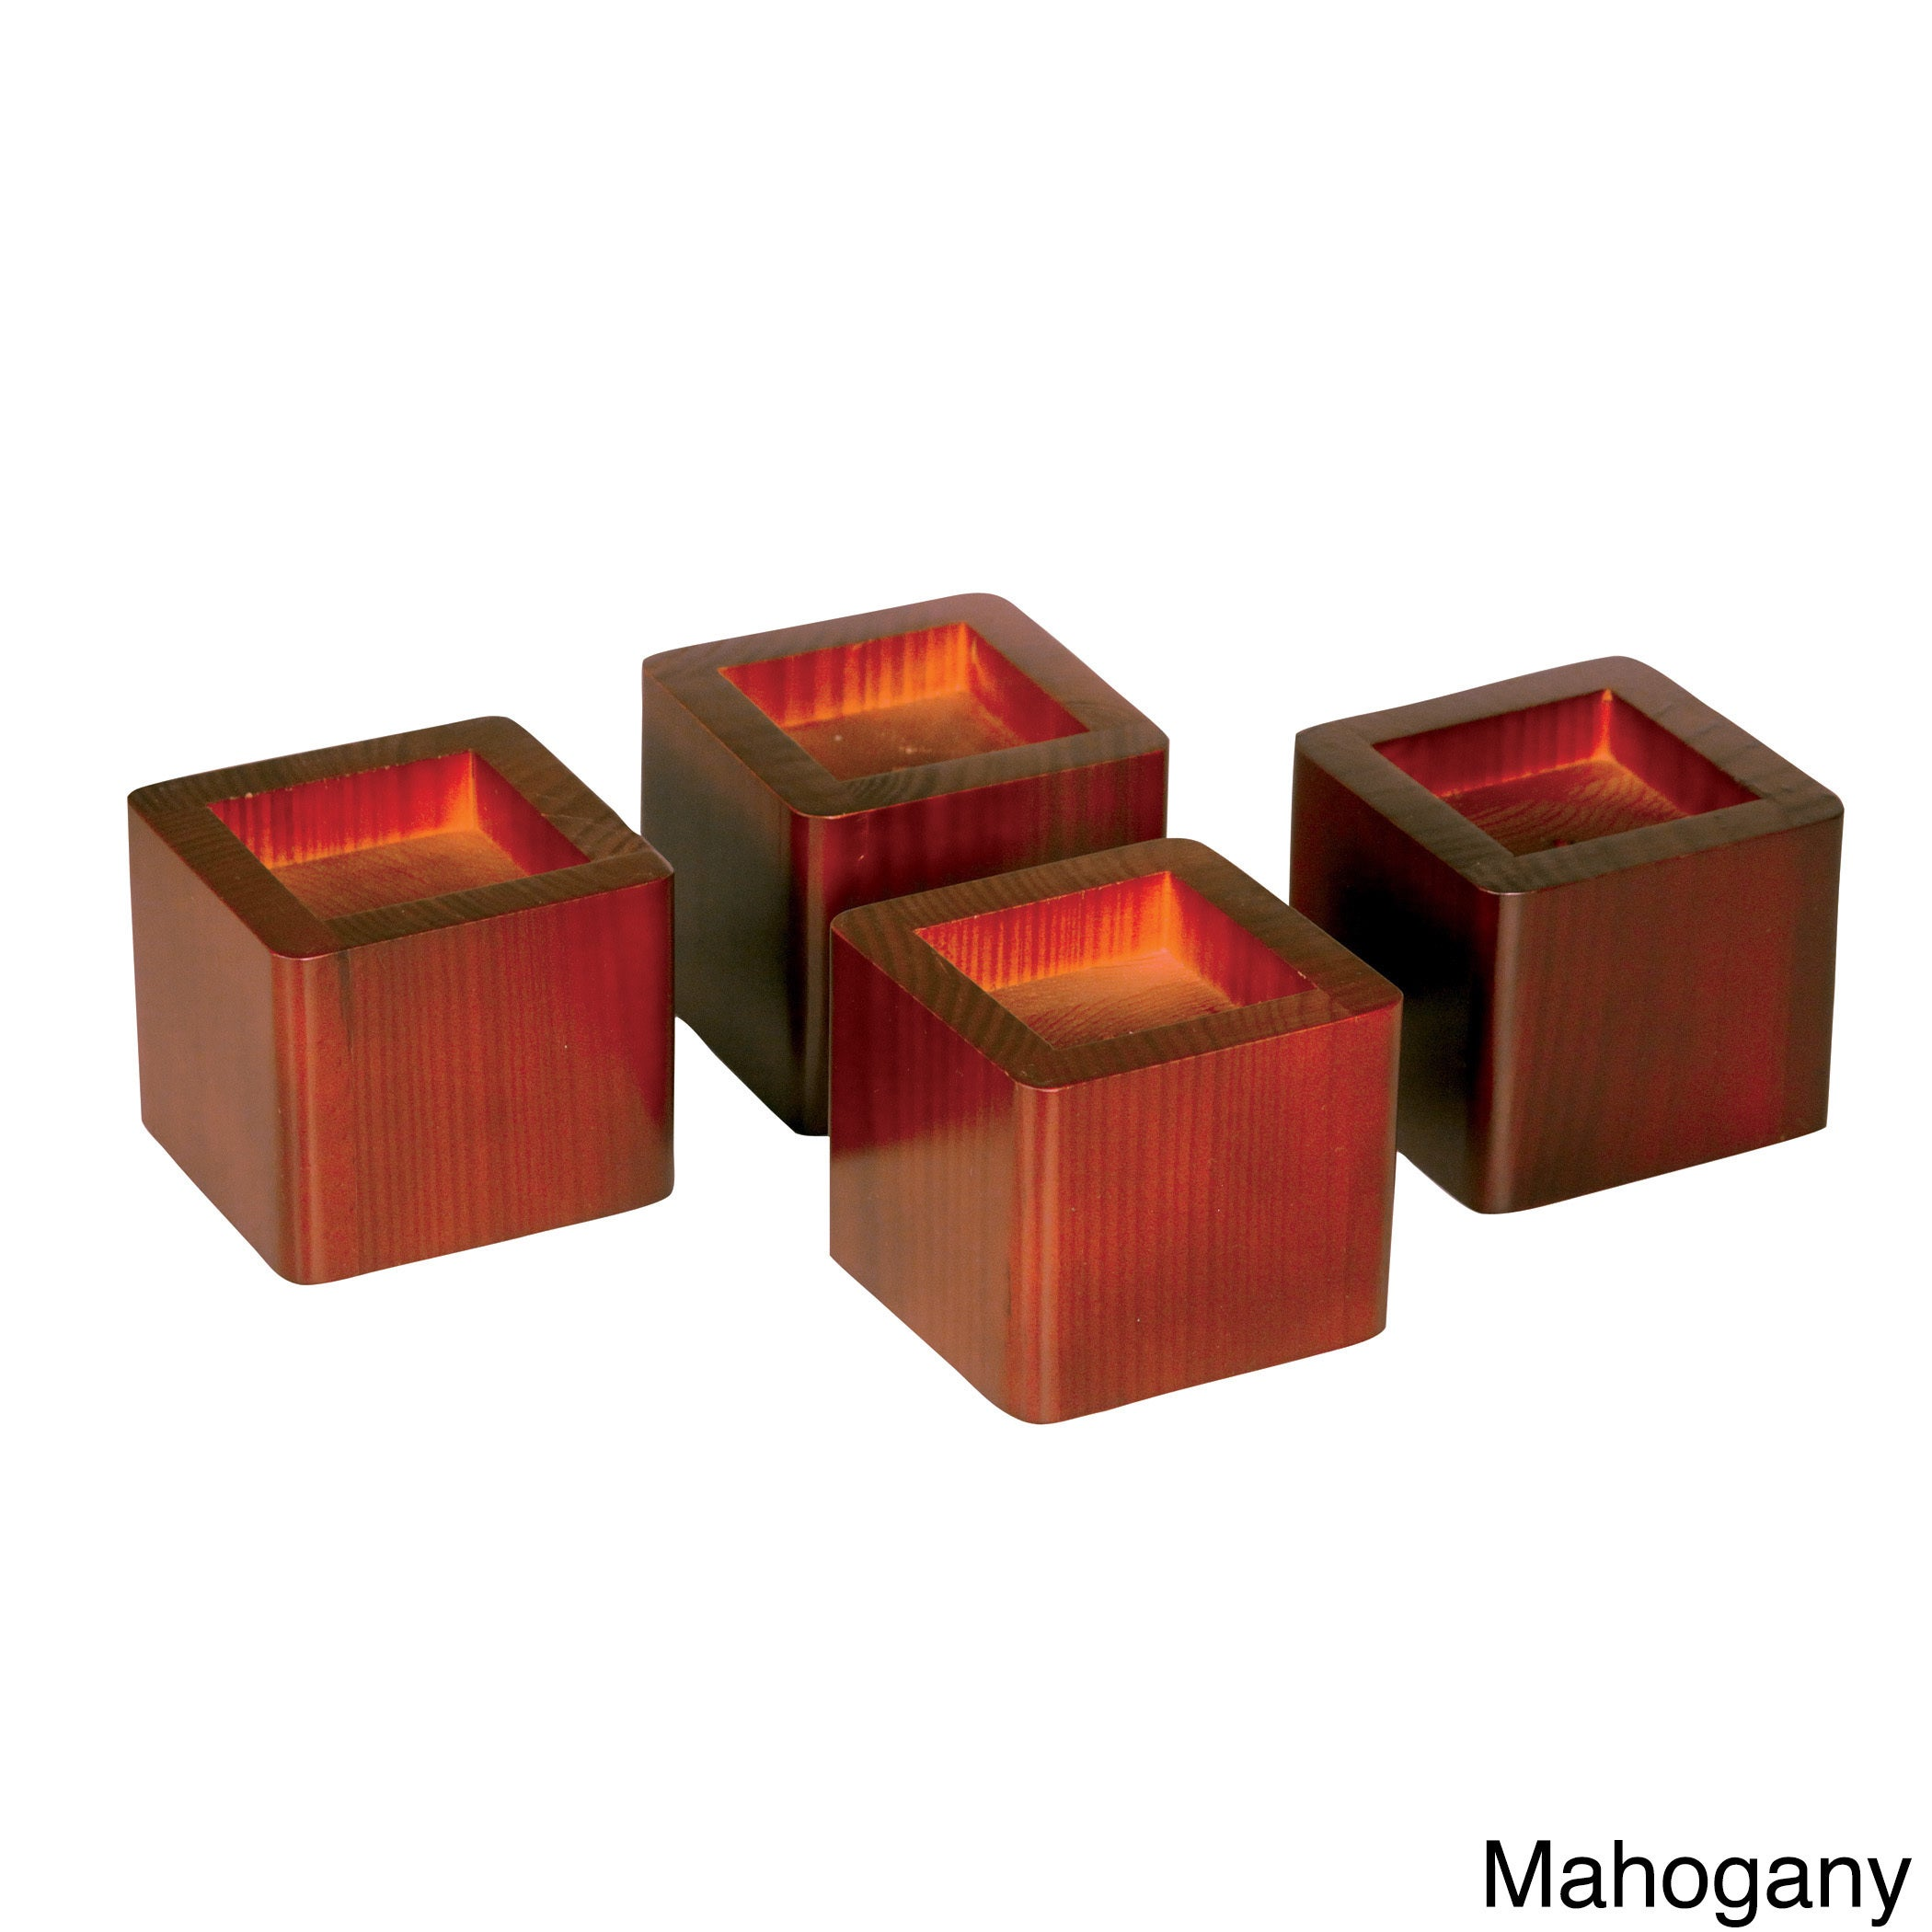 Richards Furniture Bed Risers Table Set of 4 (Mahogany), ...